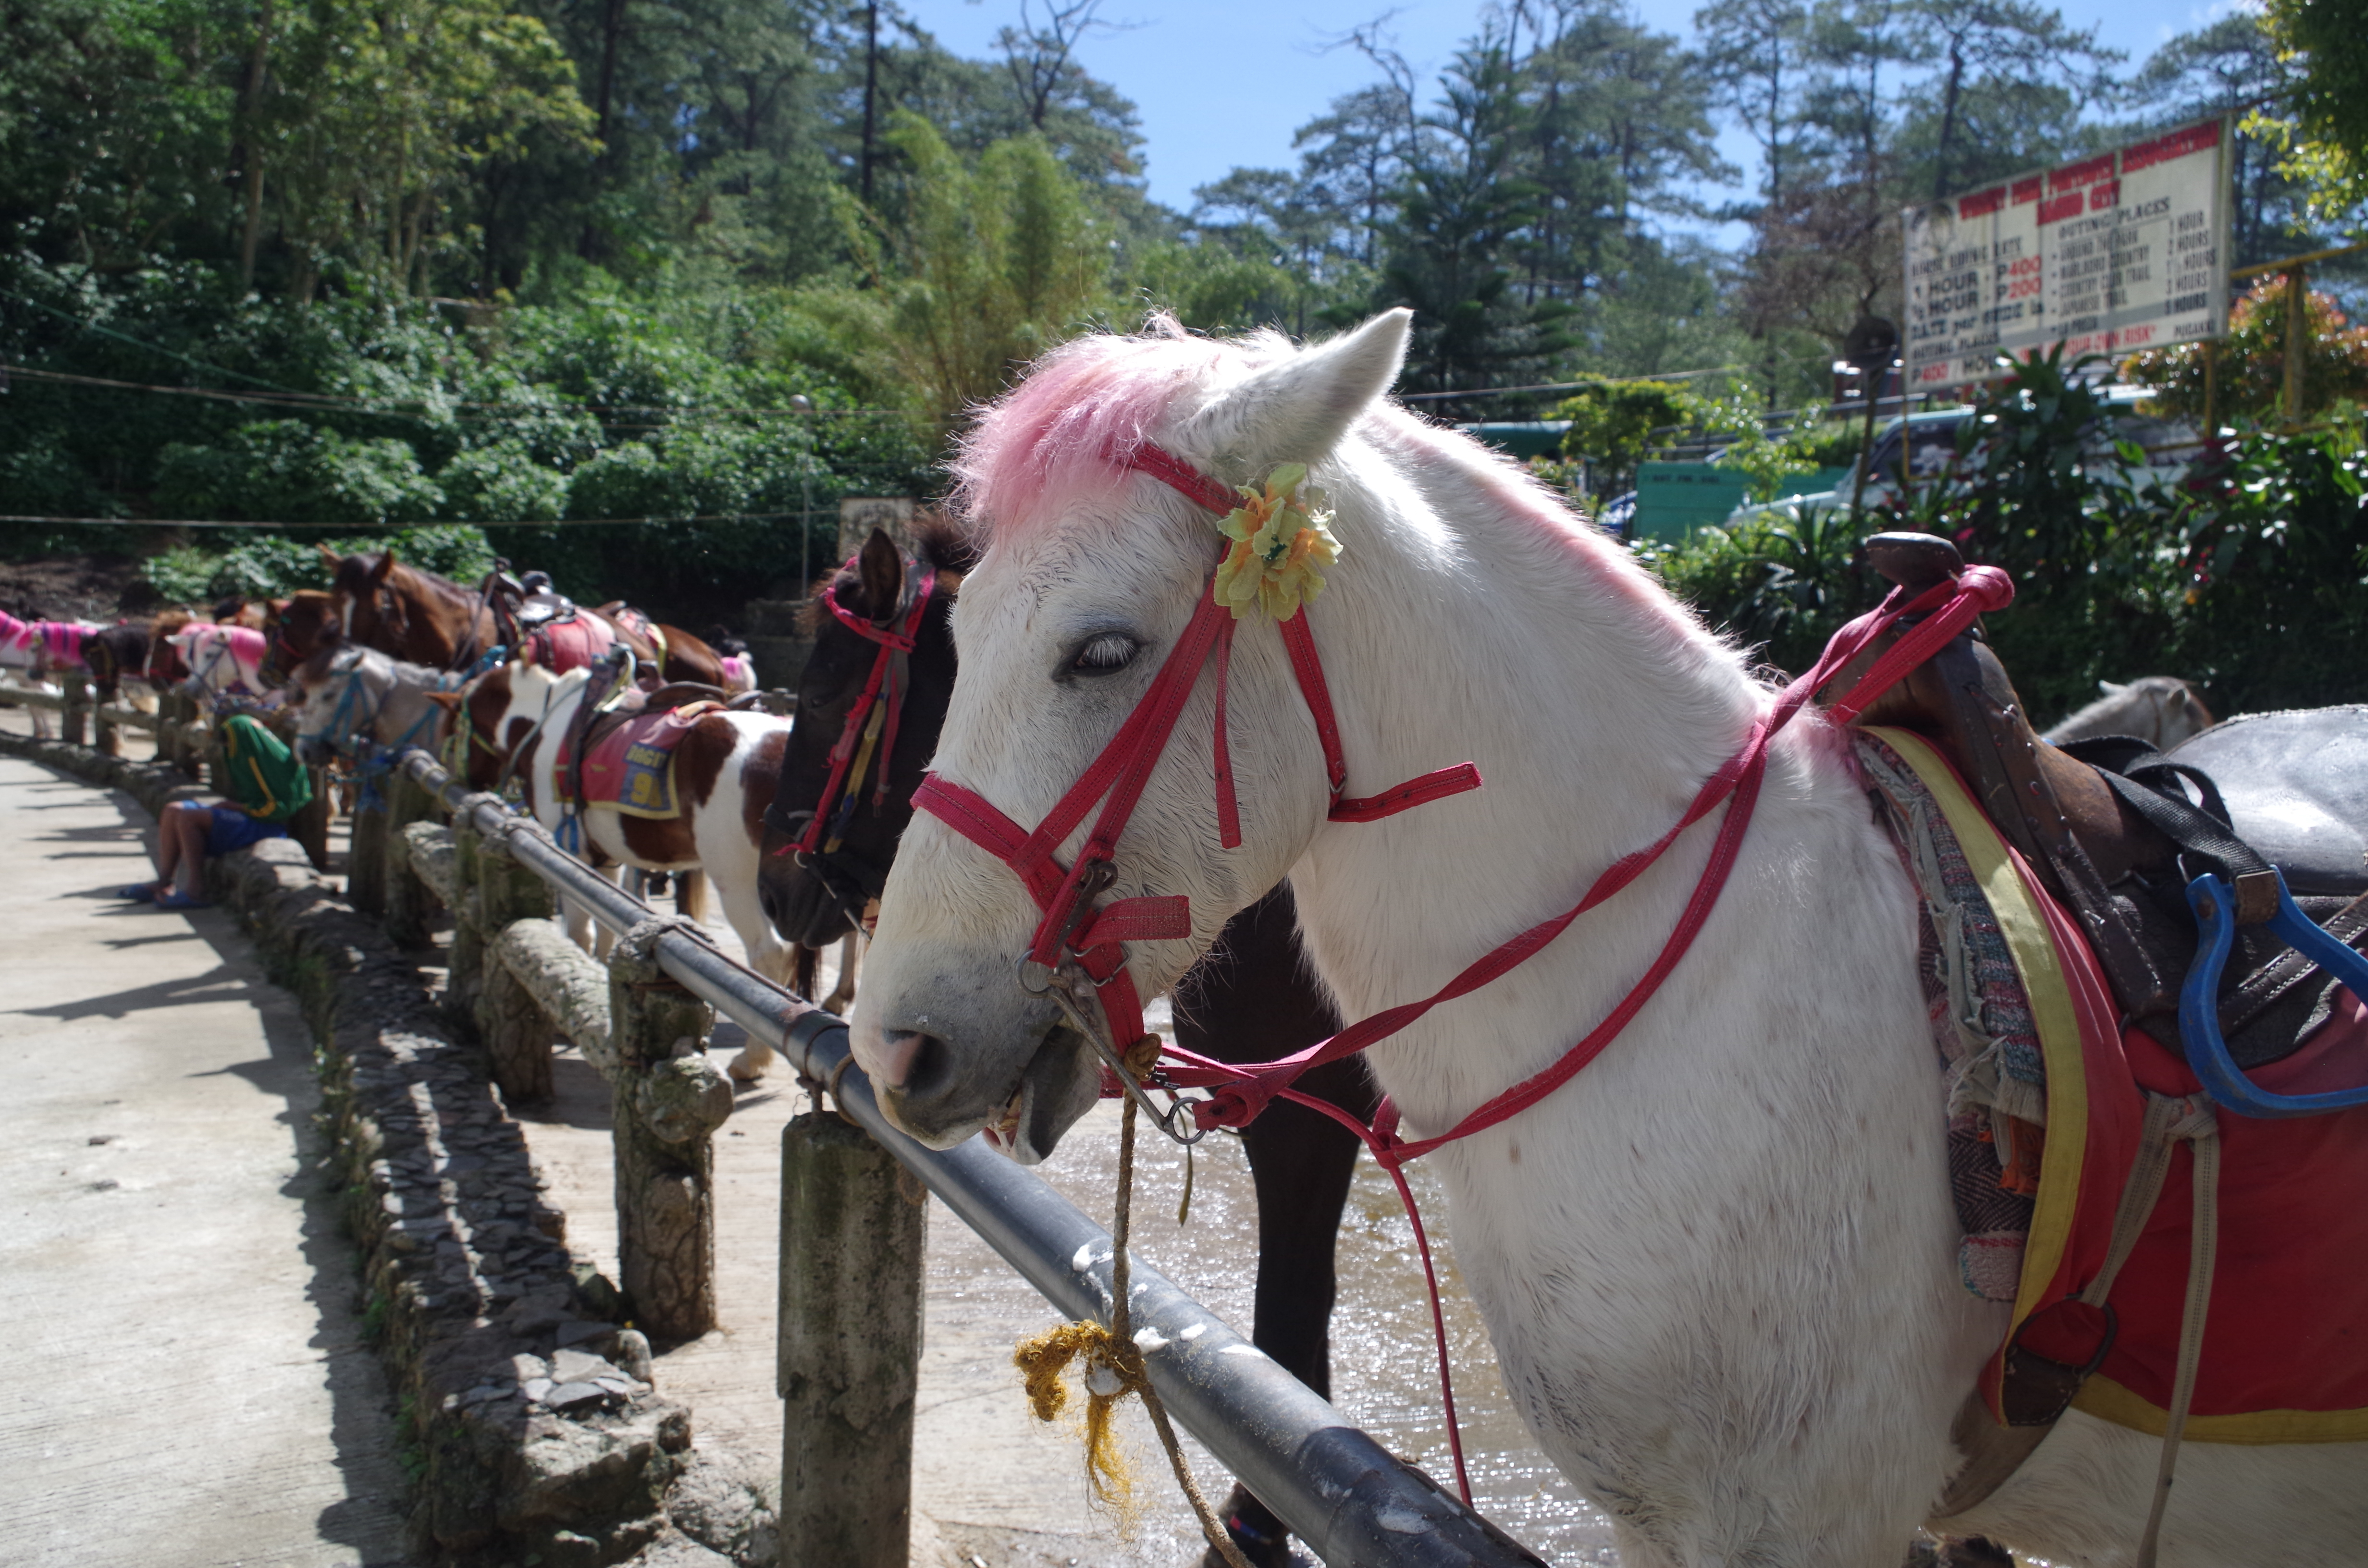 Horses lined up in Wright Park in Baguio